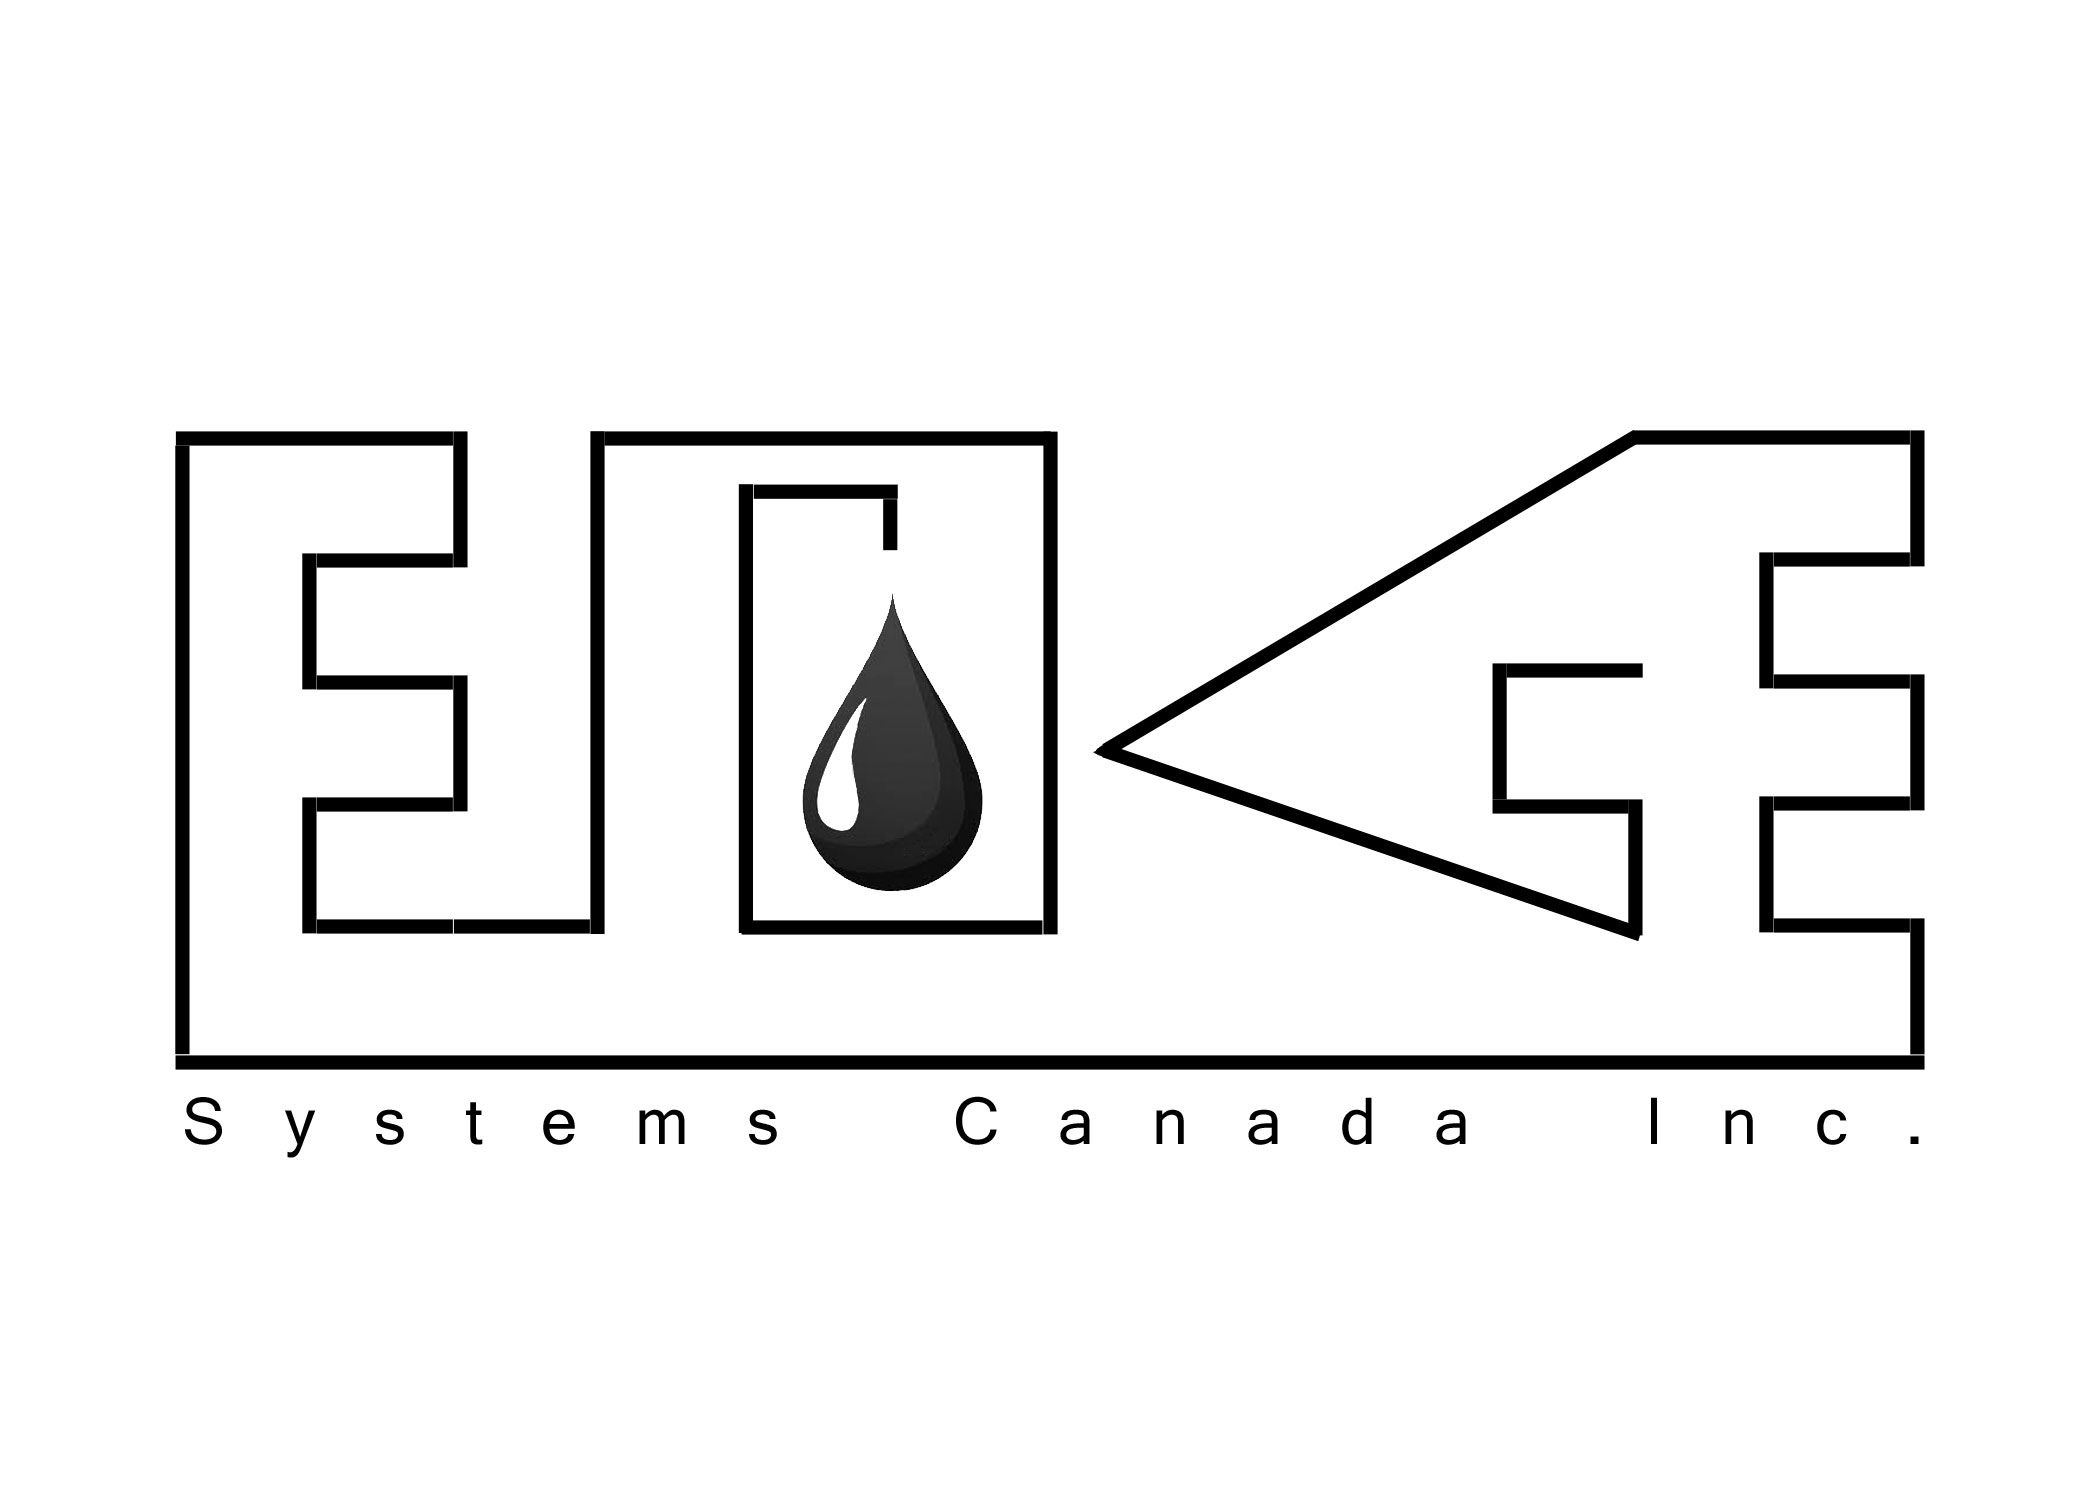 Logo Design by Raymond Mariano - Entry No. 16 in the Logo Design Contest New Logo Design for Edge Systems Canada Inc.